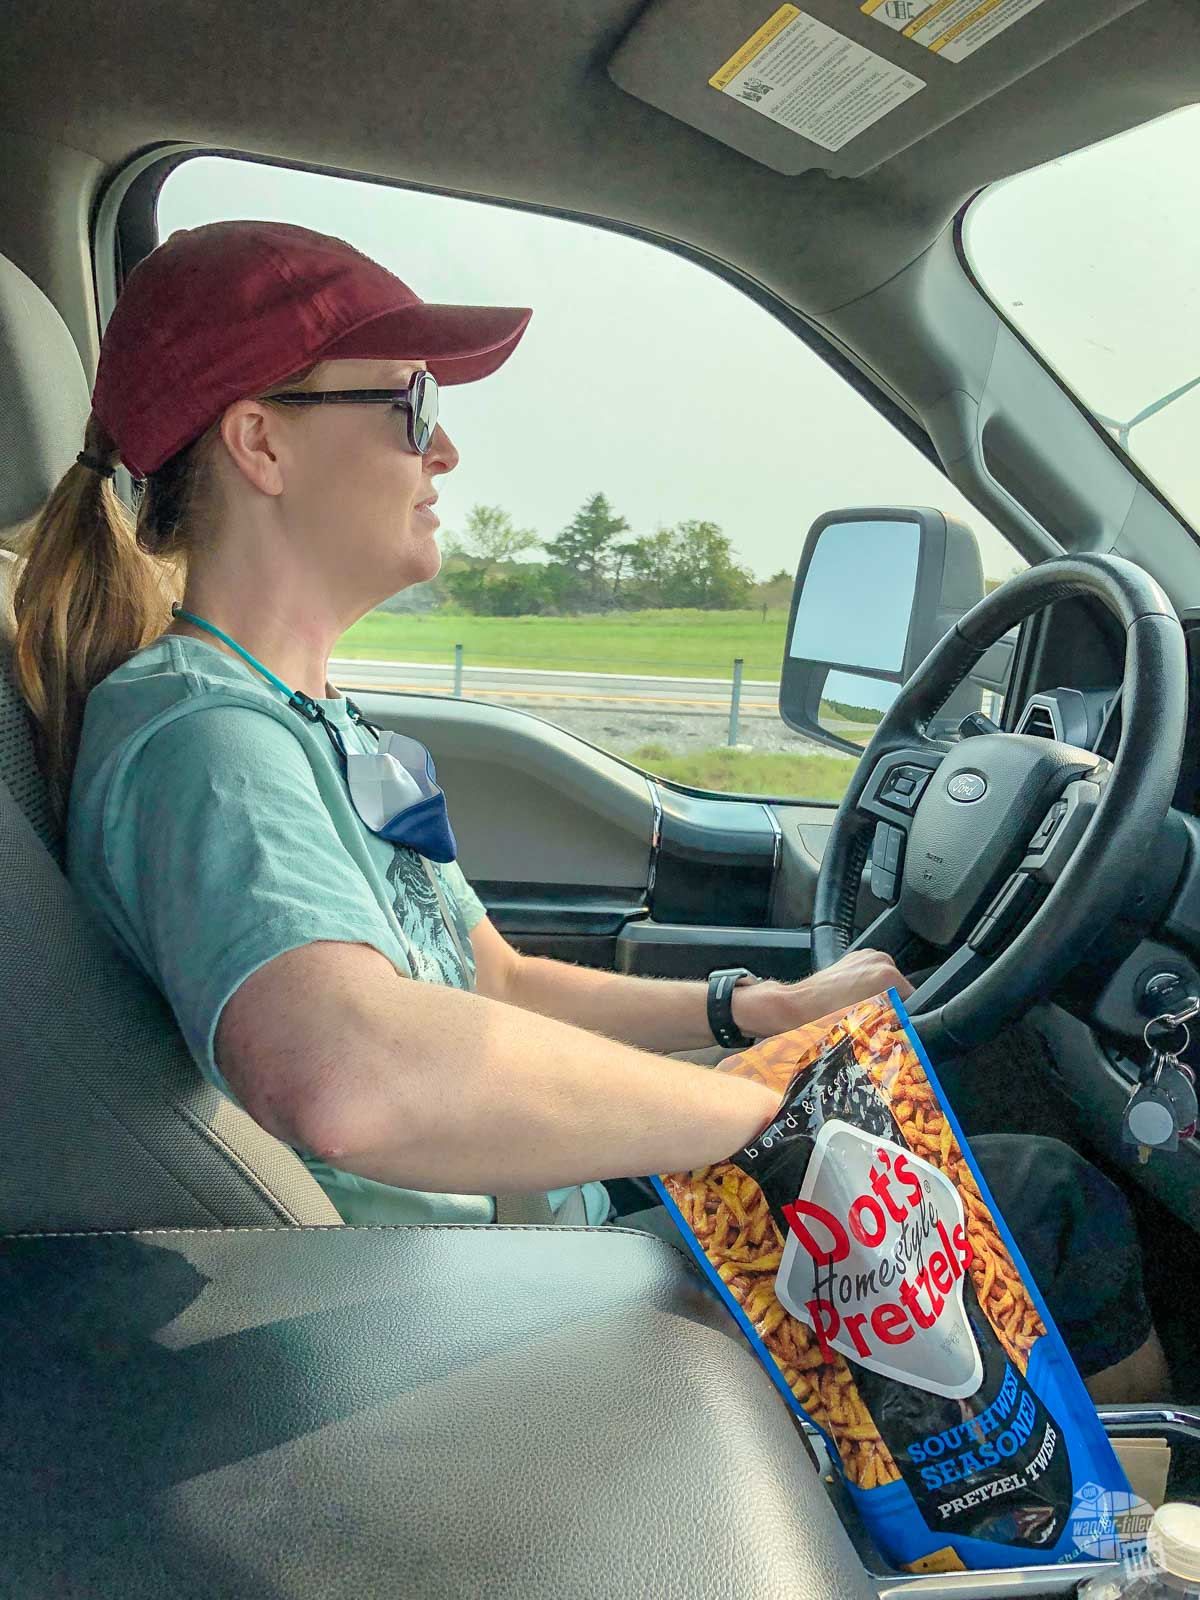 One of our recent discoveries on the road is Dot's Homestyle Pretzels out of North Dakota. We particularly enjoy the Southwest Seasoned but the Original recipe are great, too.